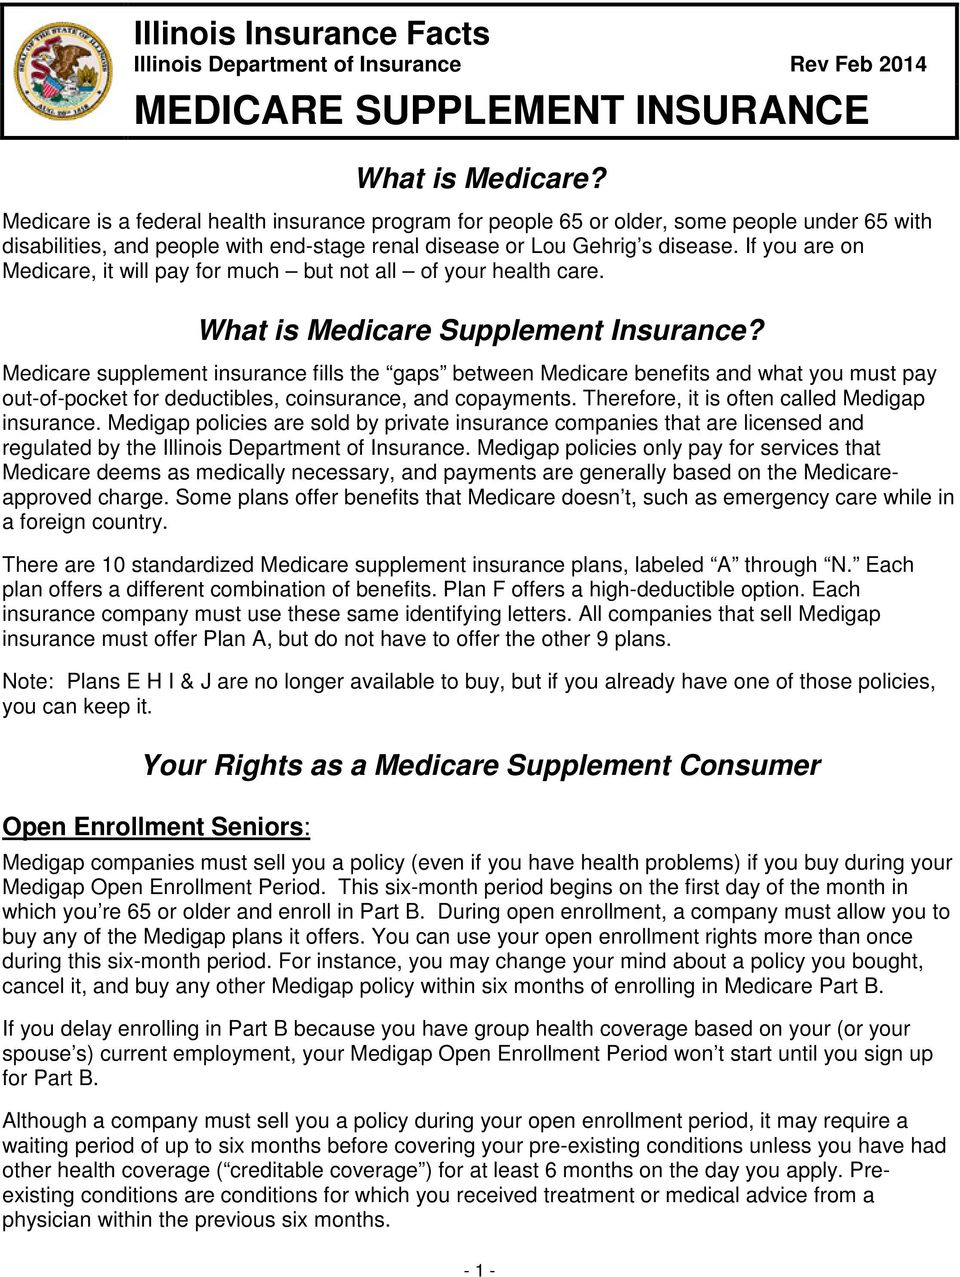 if you are on medicare it will pay for much but not all of your